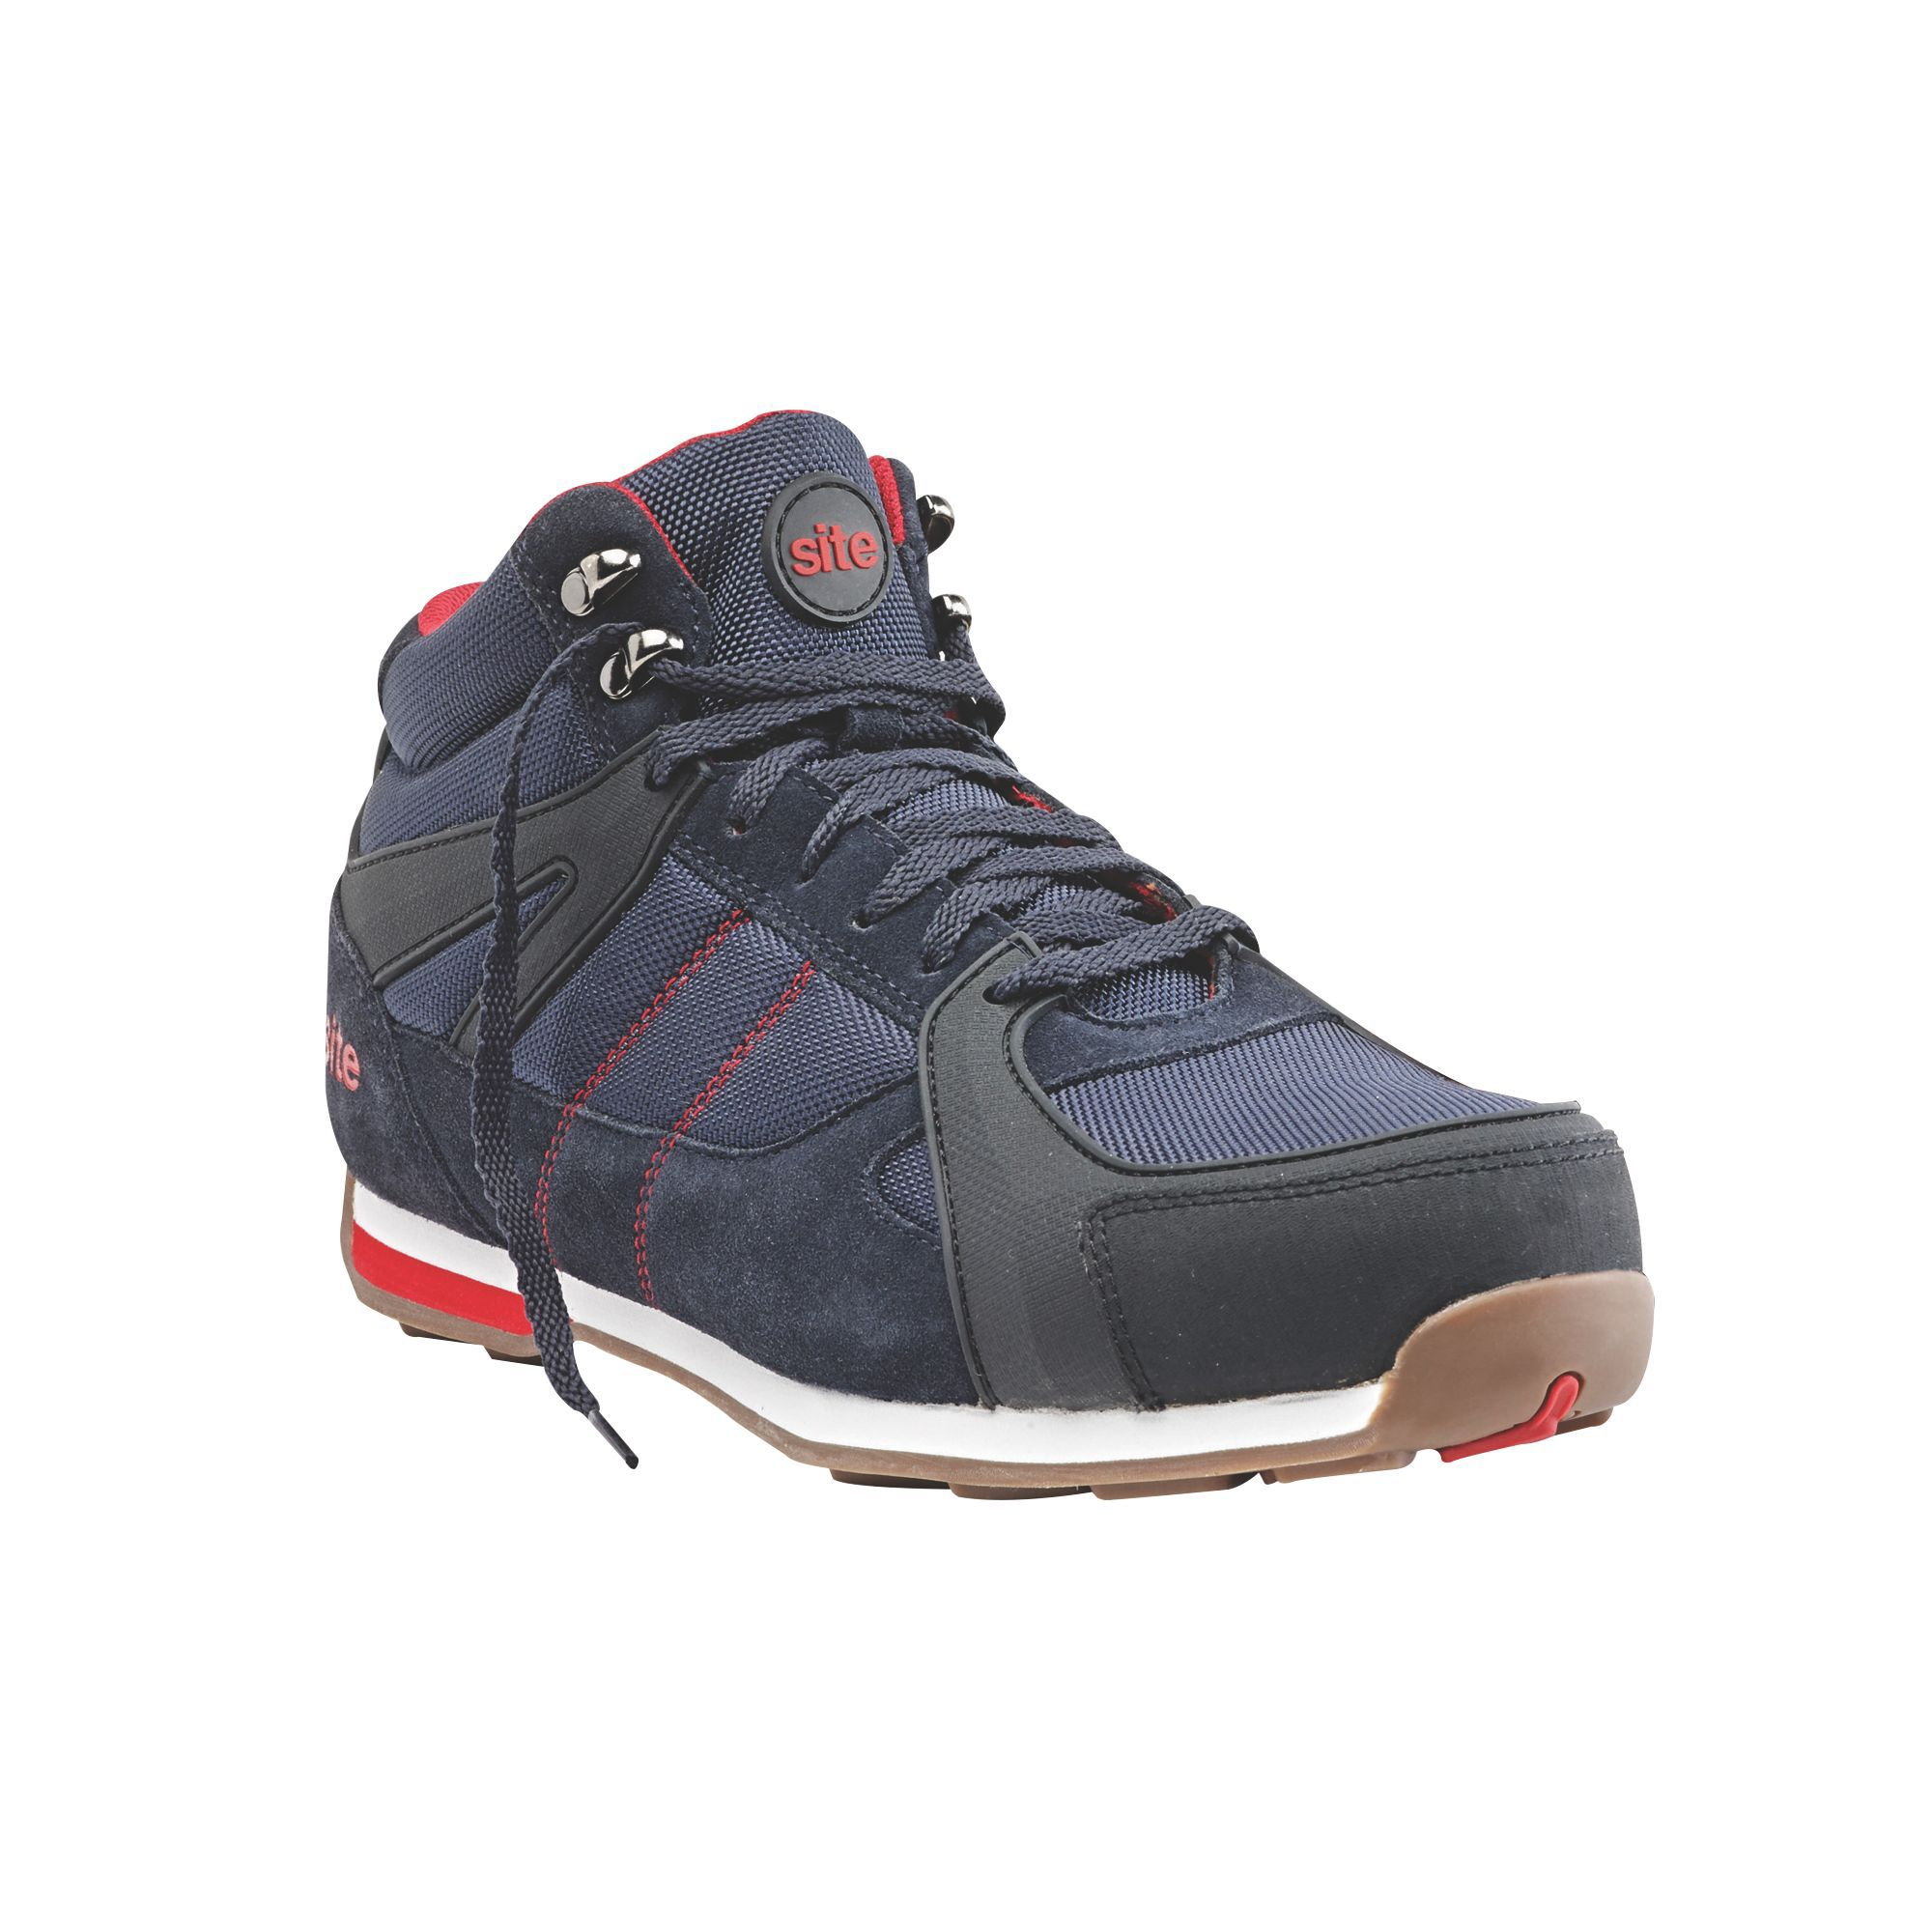 29f0ae0c26a Site Strata Navy Safety trainers, Size 9 | Departments | DIY at B&Q